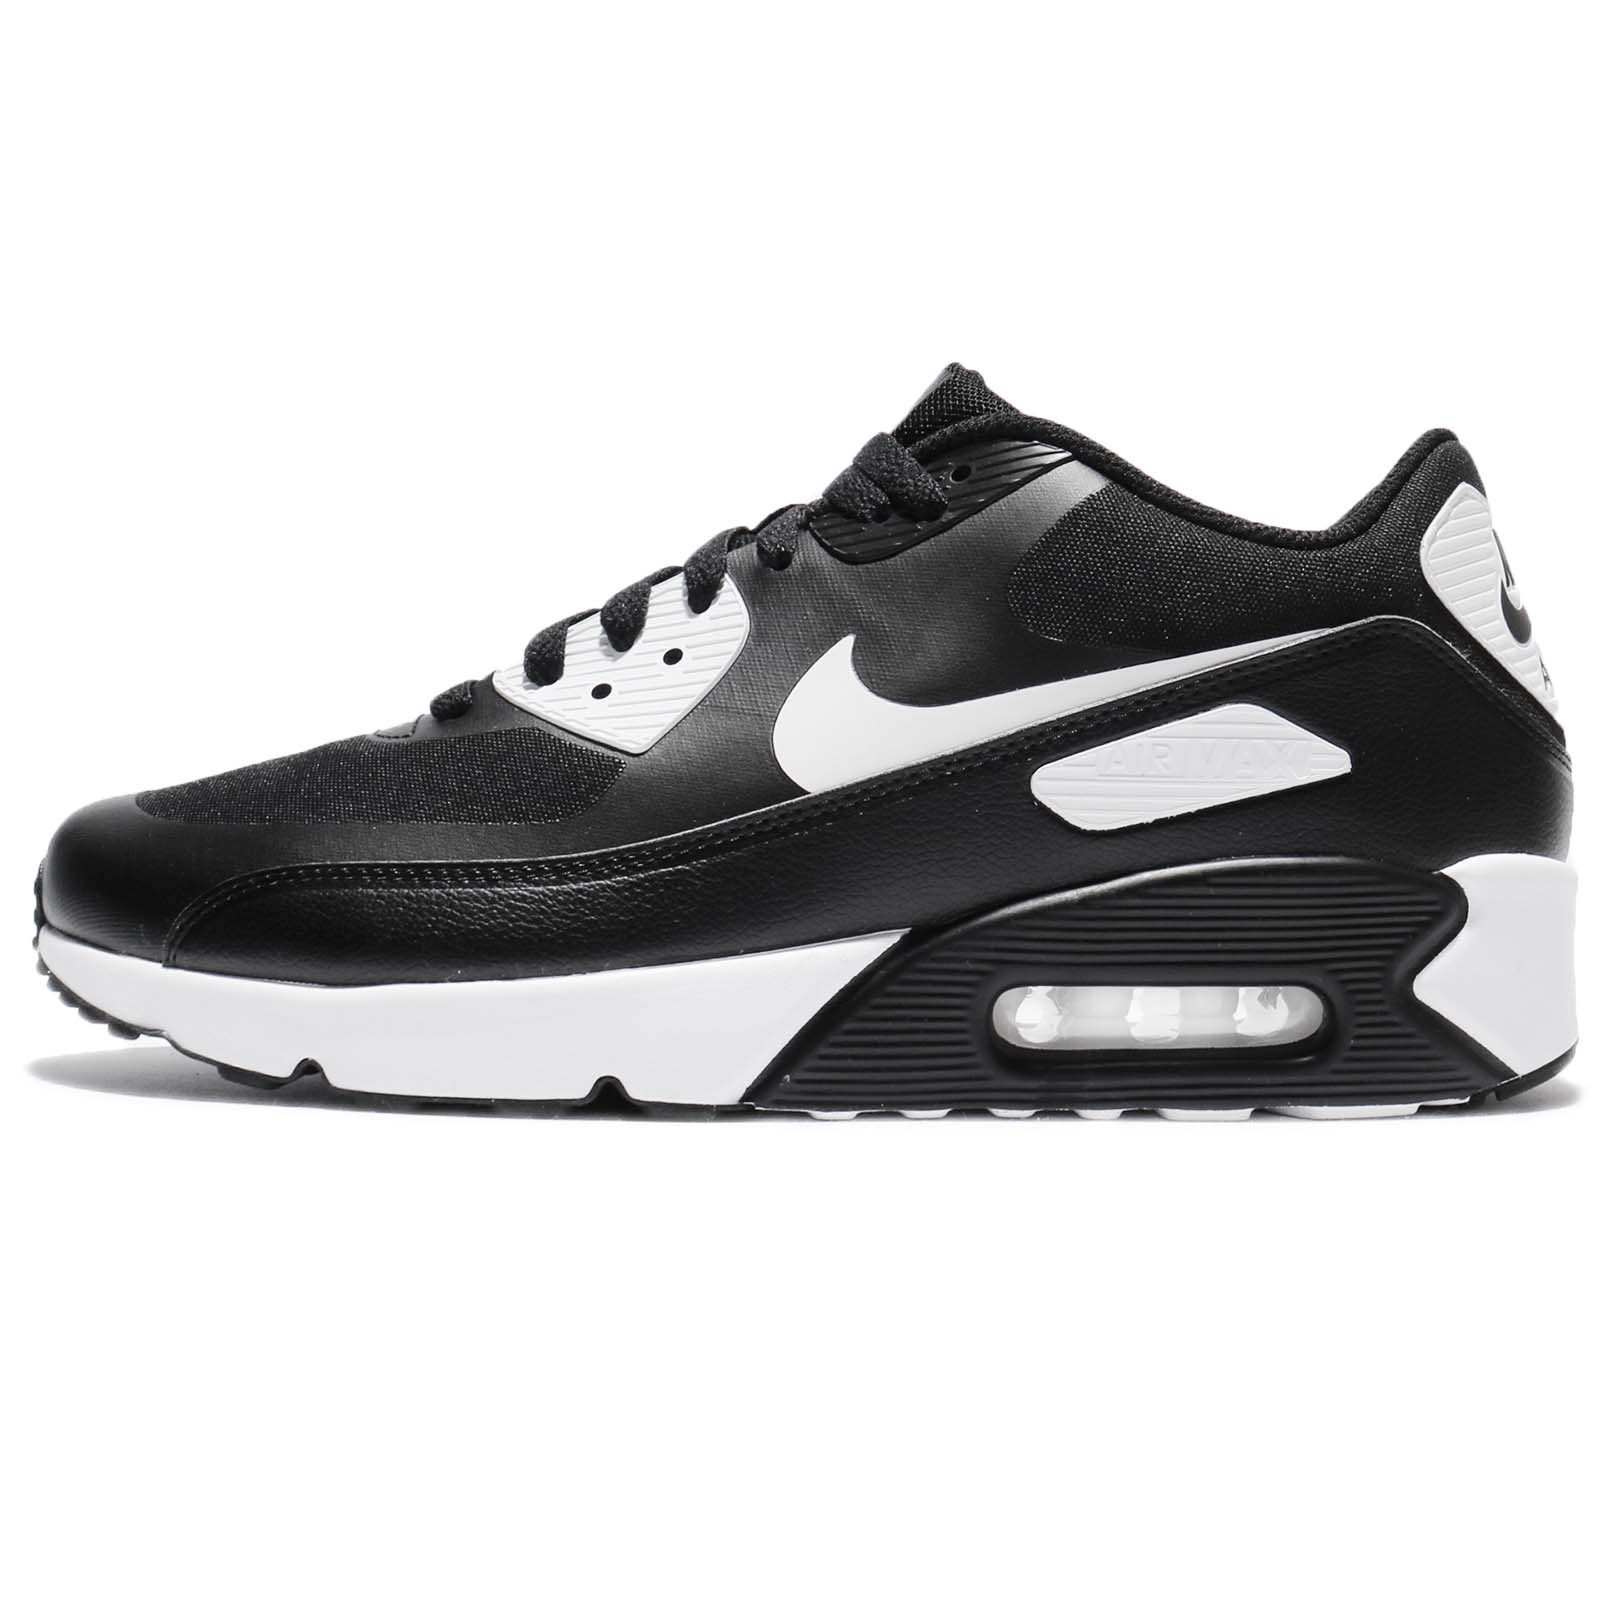 e6fe144647933 NIKE Men's Air Max 90 Ultra 2.0 Essential, Black/White-White, 9 M US